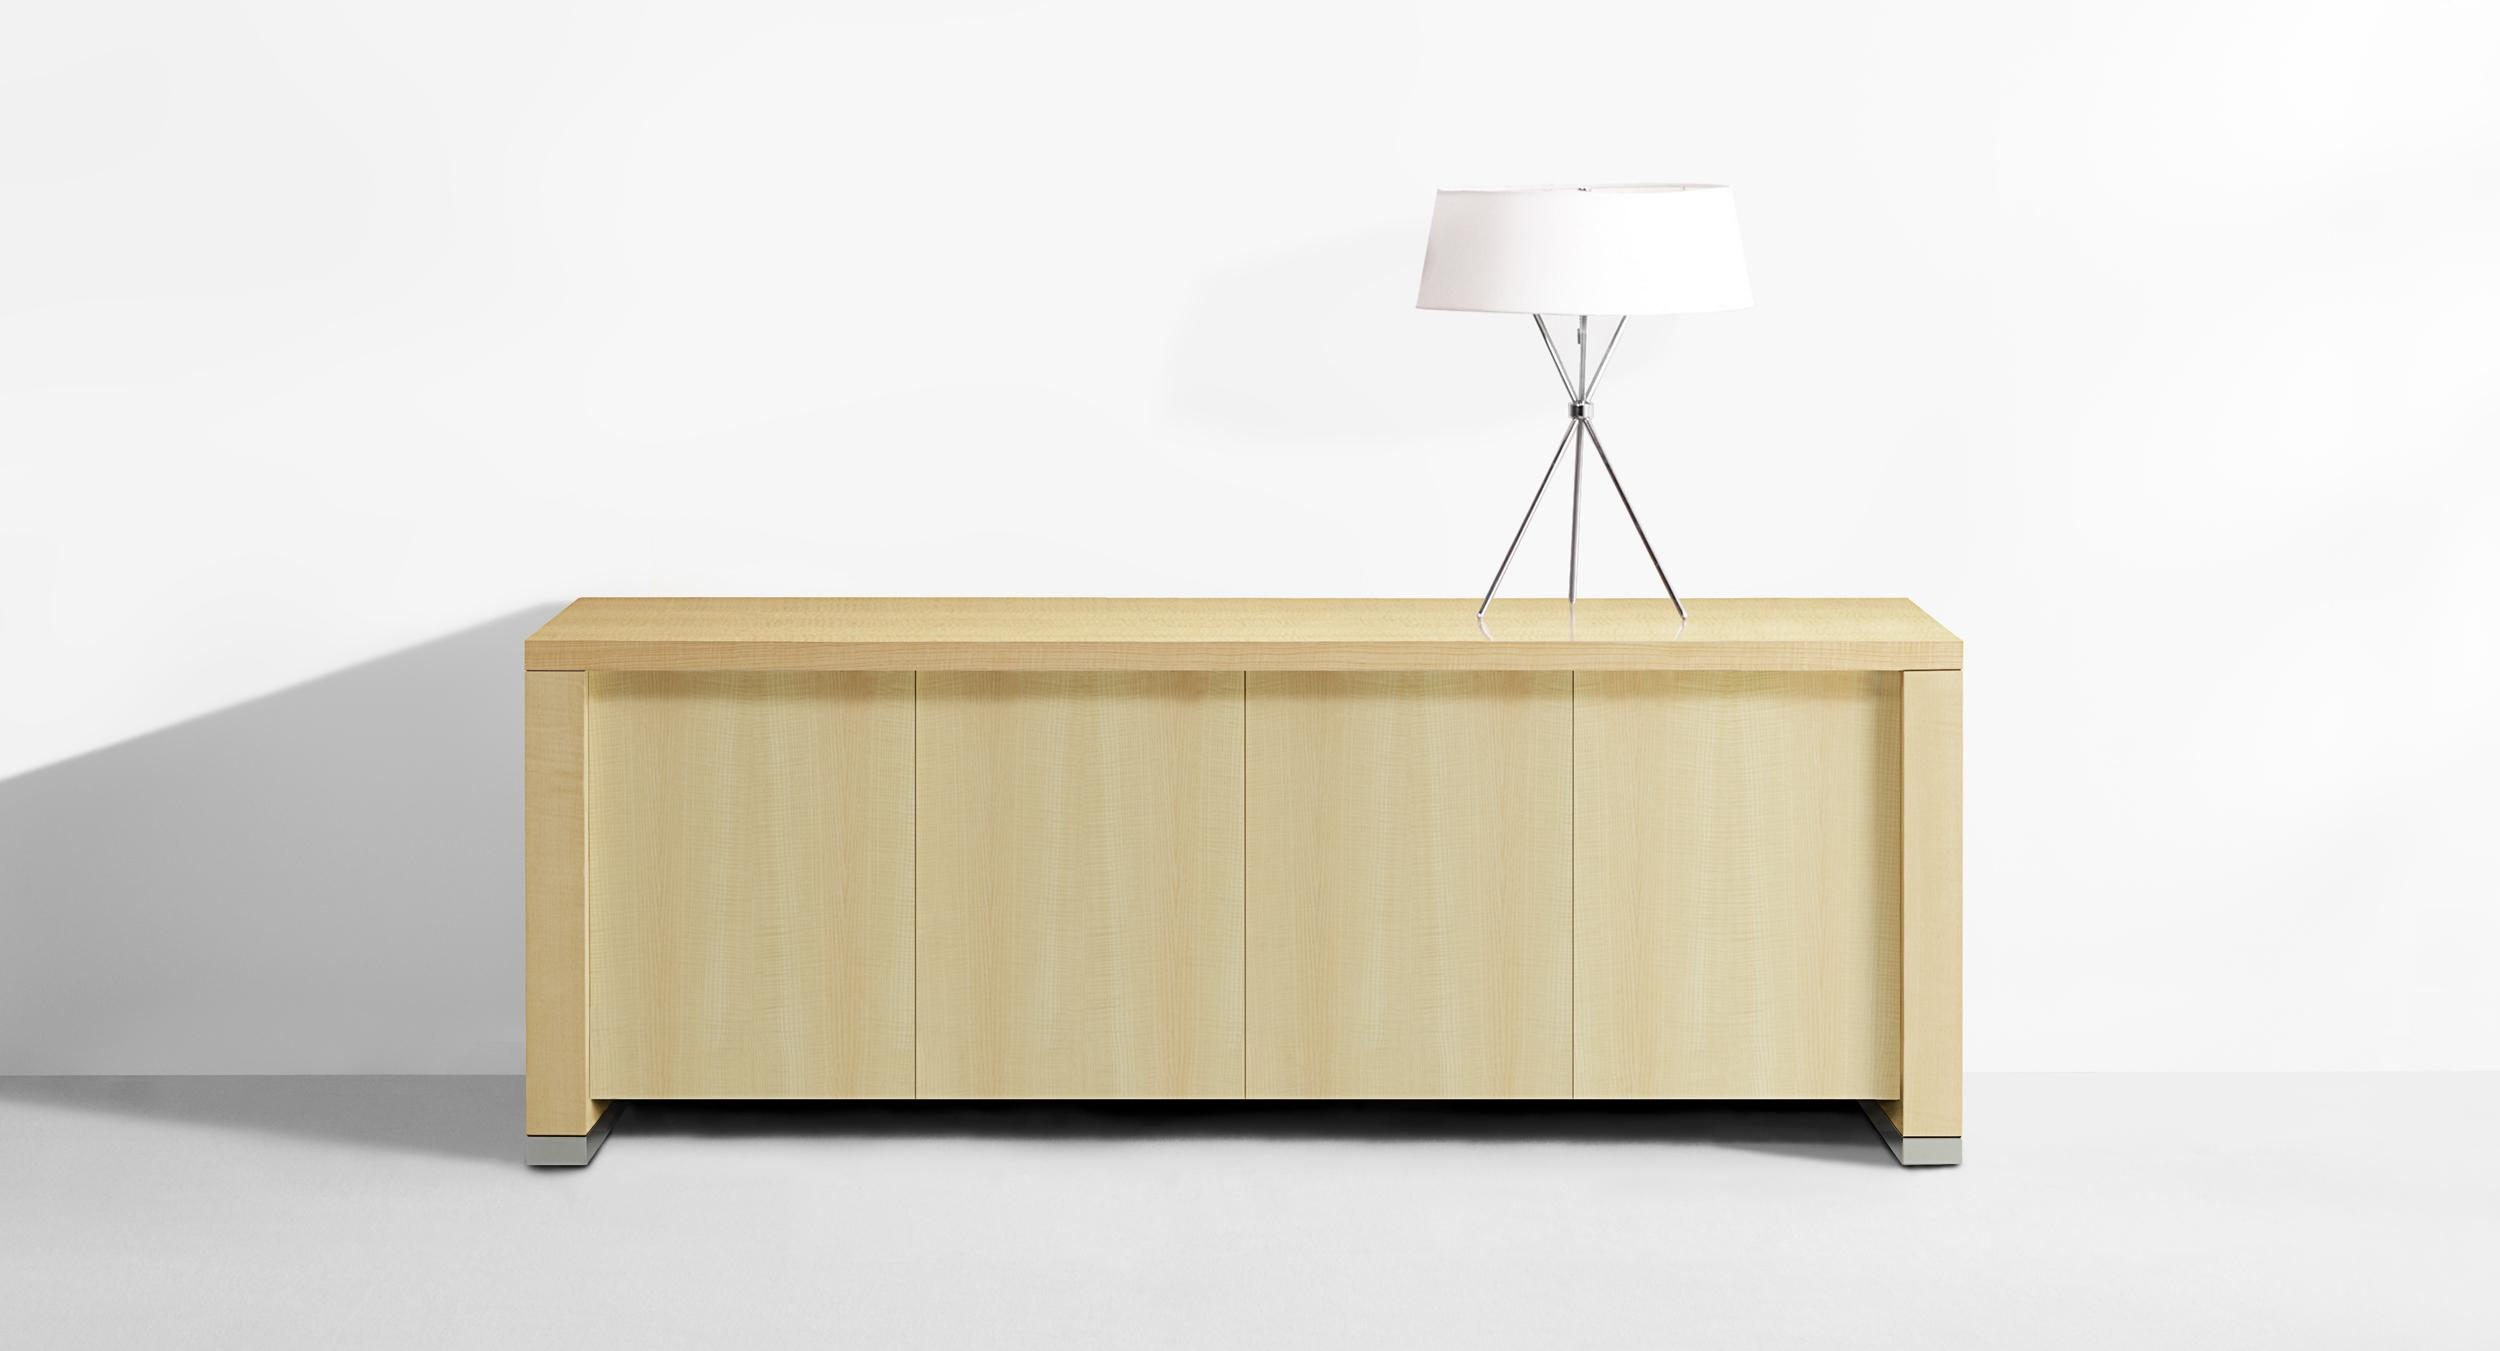 Motus mobile credenzas are available in multiple configurations and finishes.